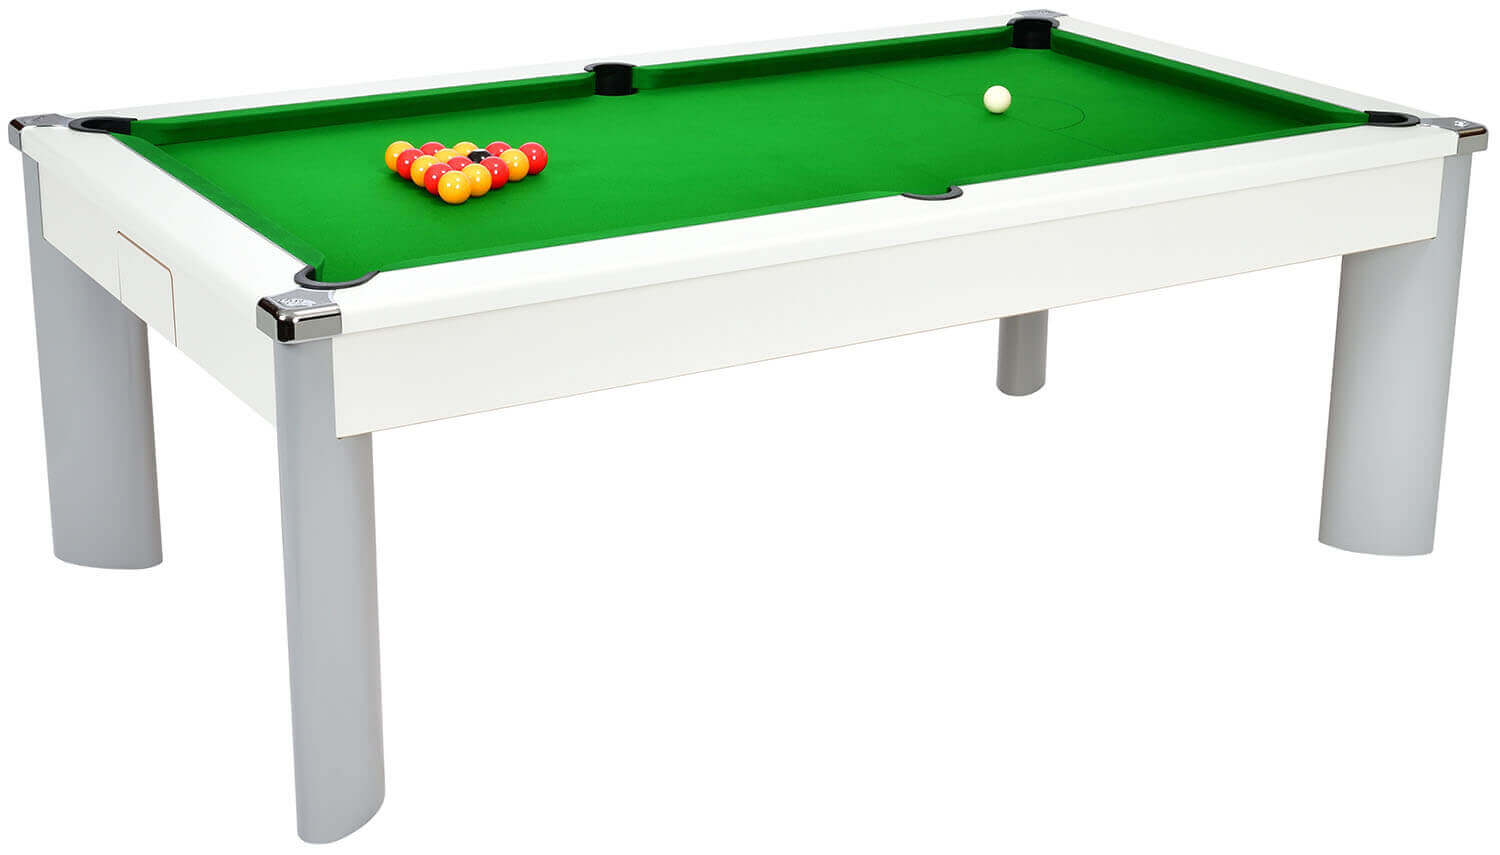 Fusion pool dining table 6 ft 7 ft liberty games for Table 6 games